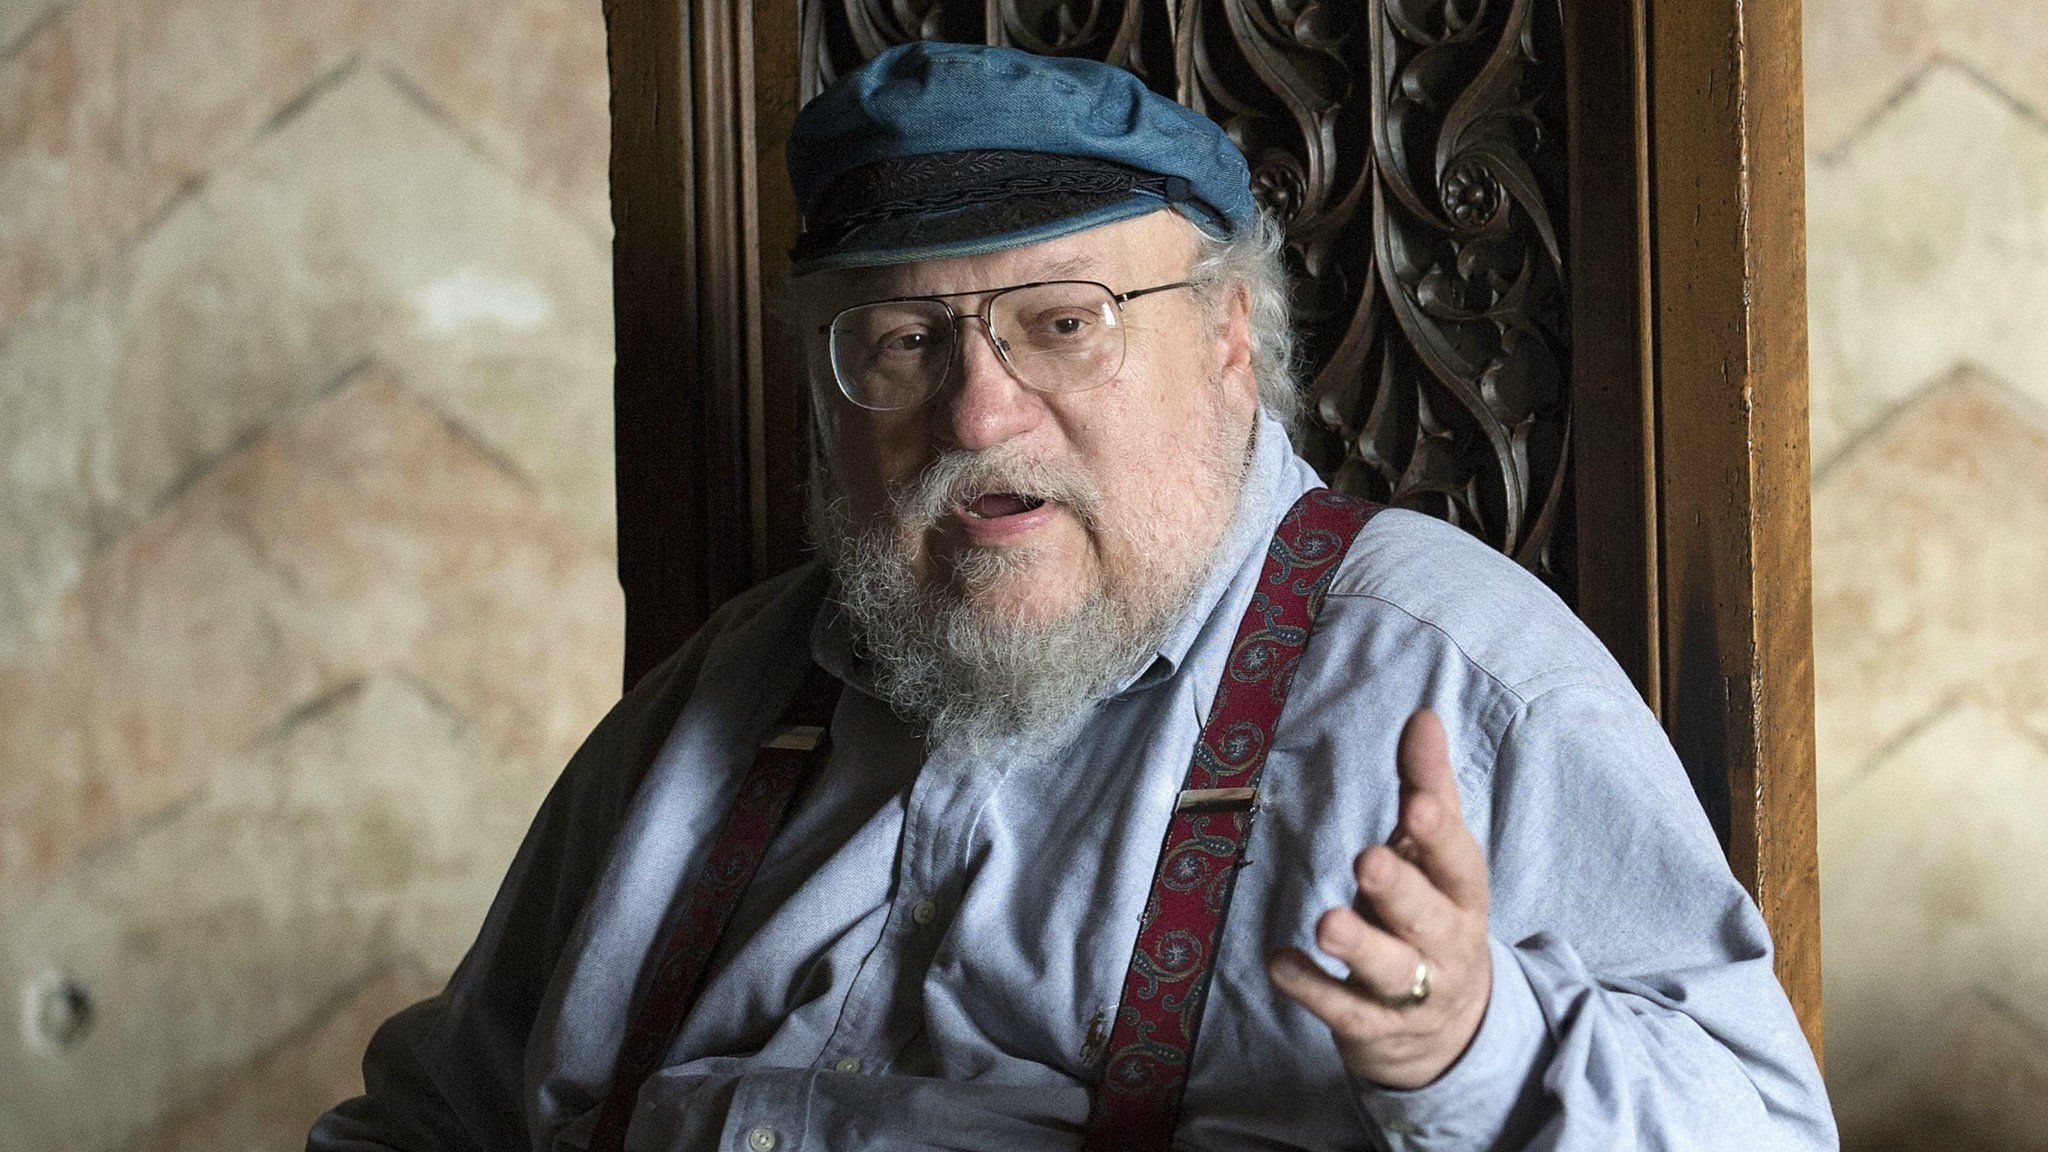 George R.R. Martin: father of 'Game of Thrones' - msn.com